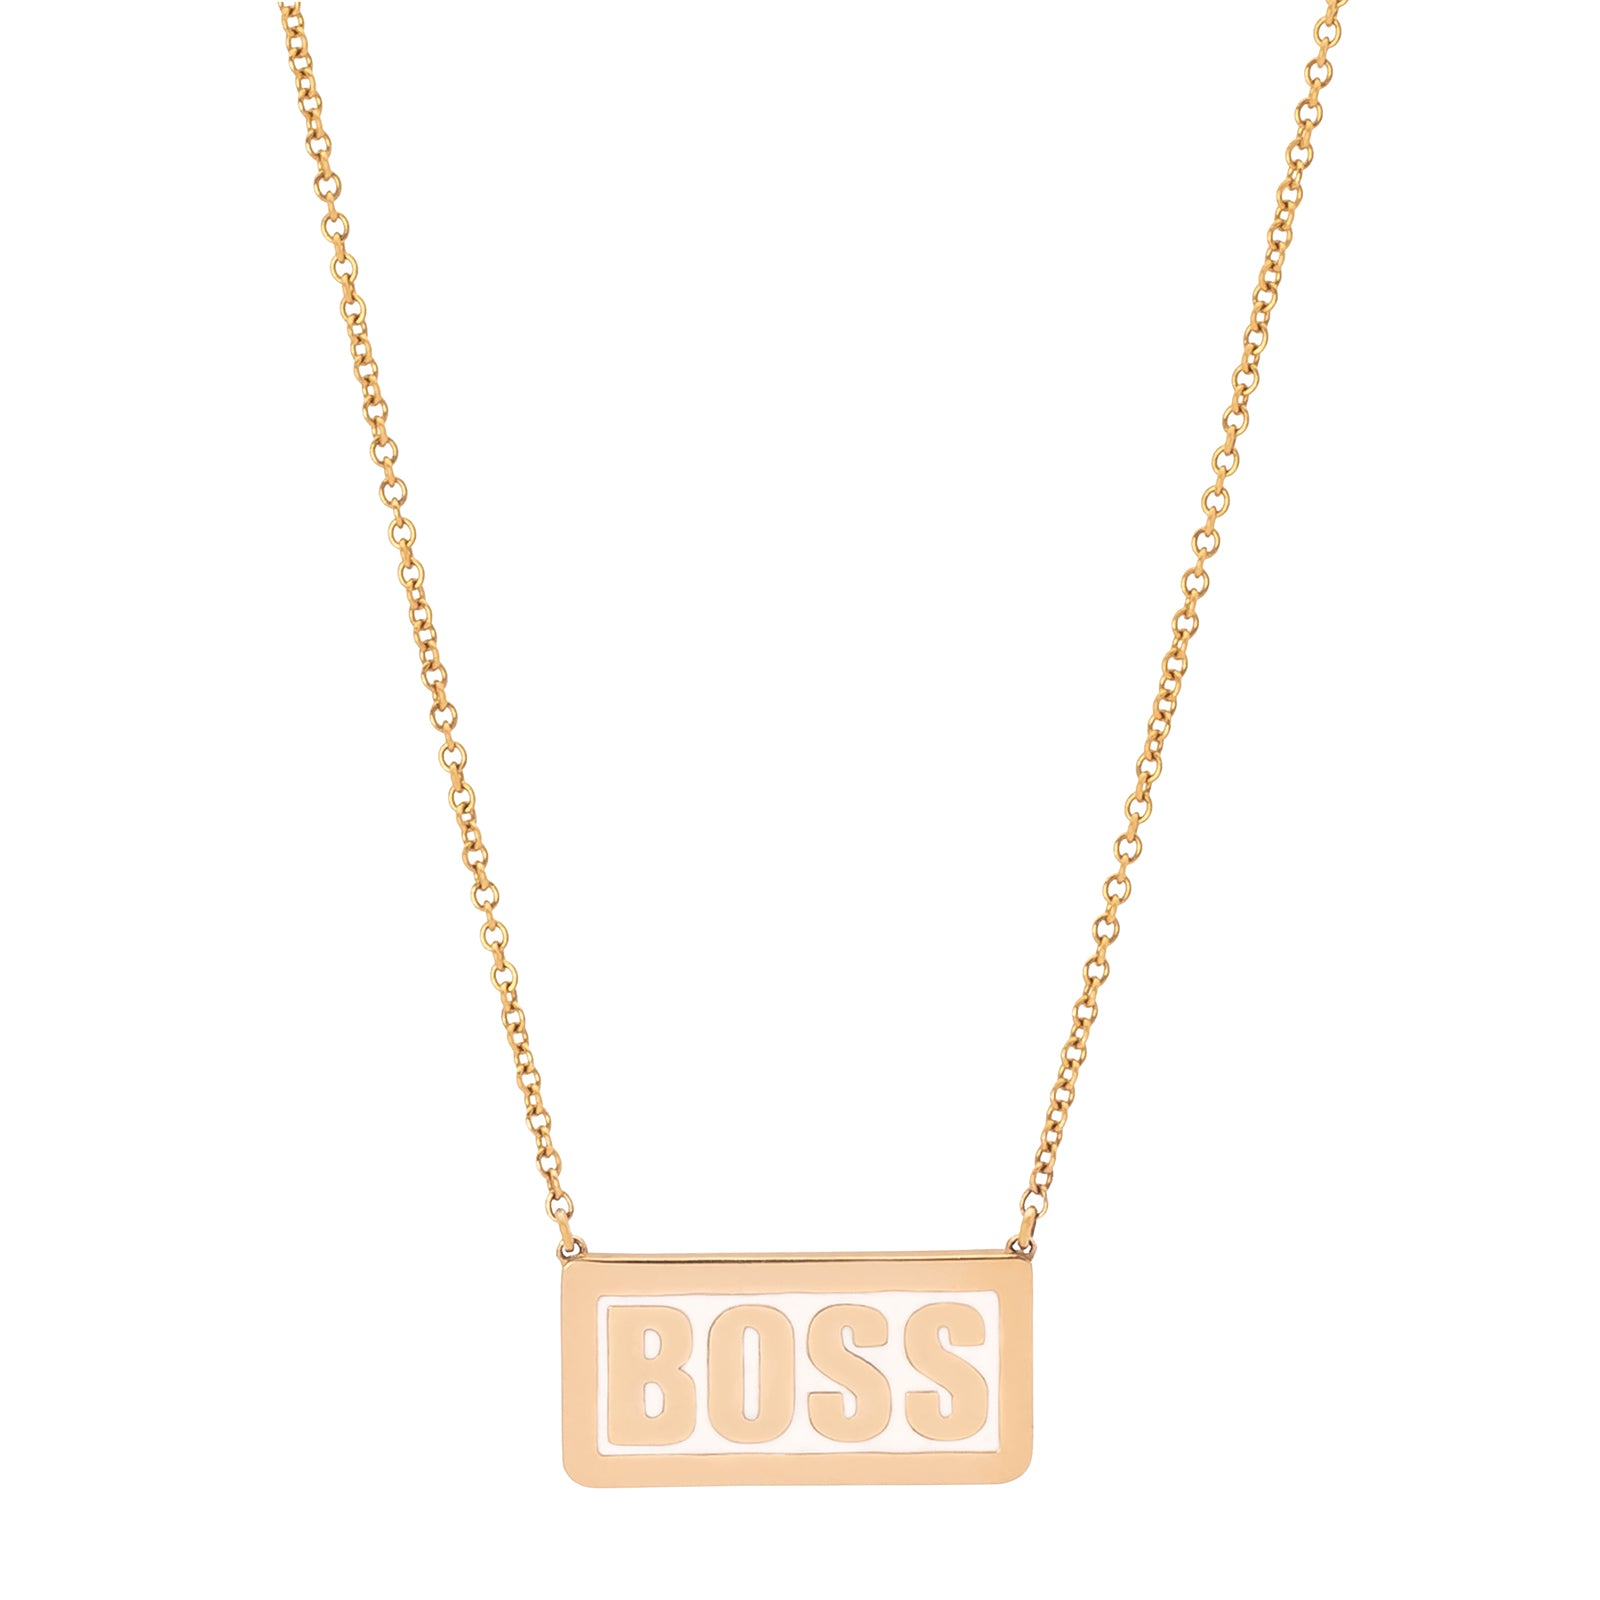 Established Jewelry Boss Enamel Plate Necklace - White - Necklaces - Broken English Jewelry